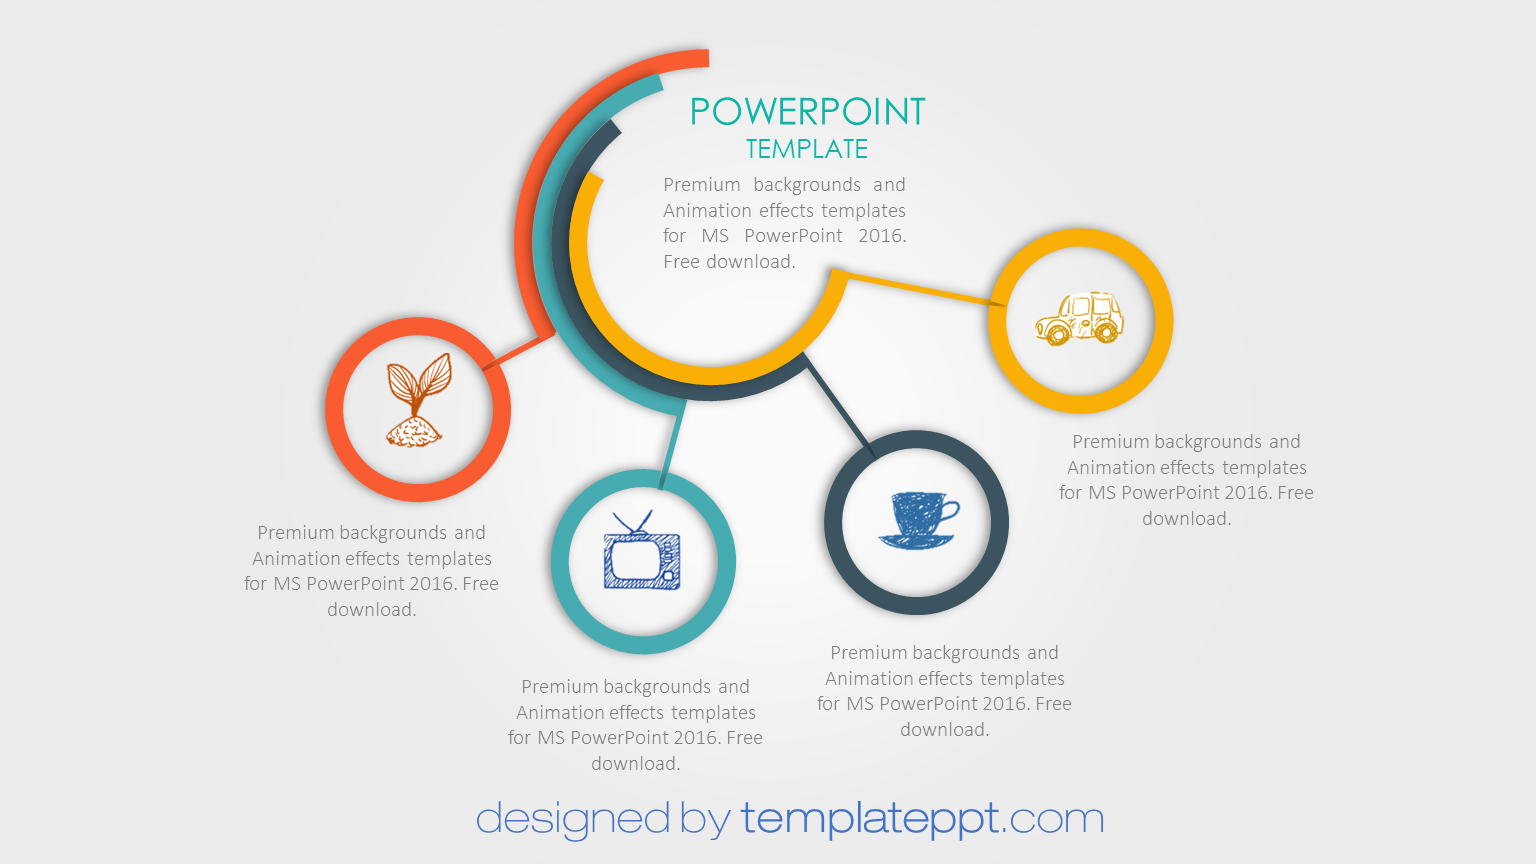 Professional powerpoint templates free download 2016 powerpoint professional powerpoint templates free download 2016 wajeb